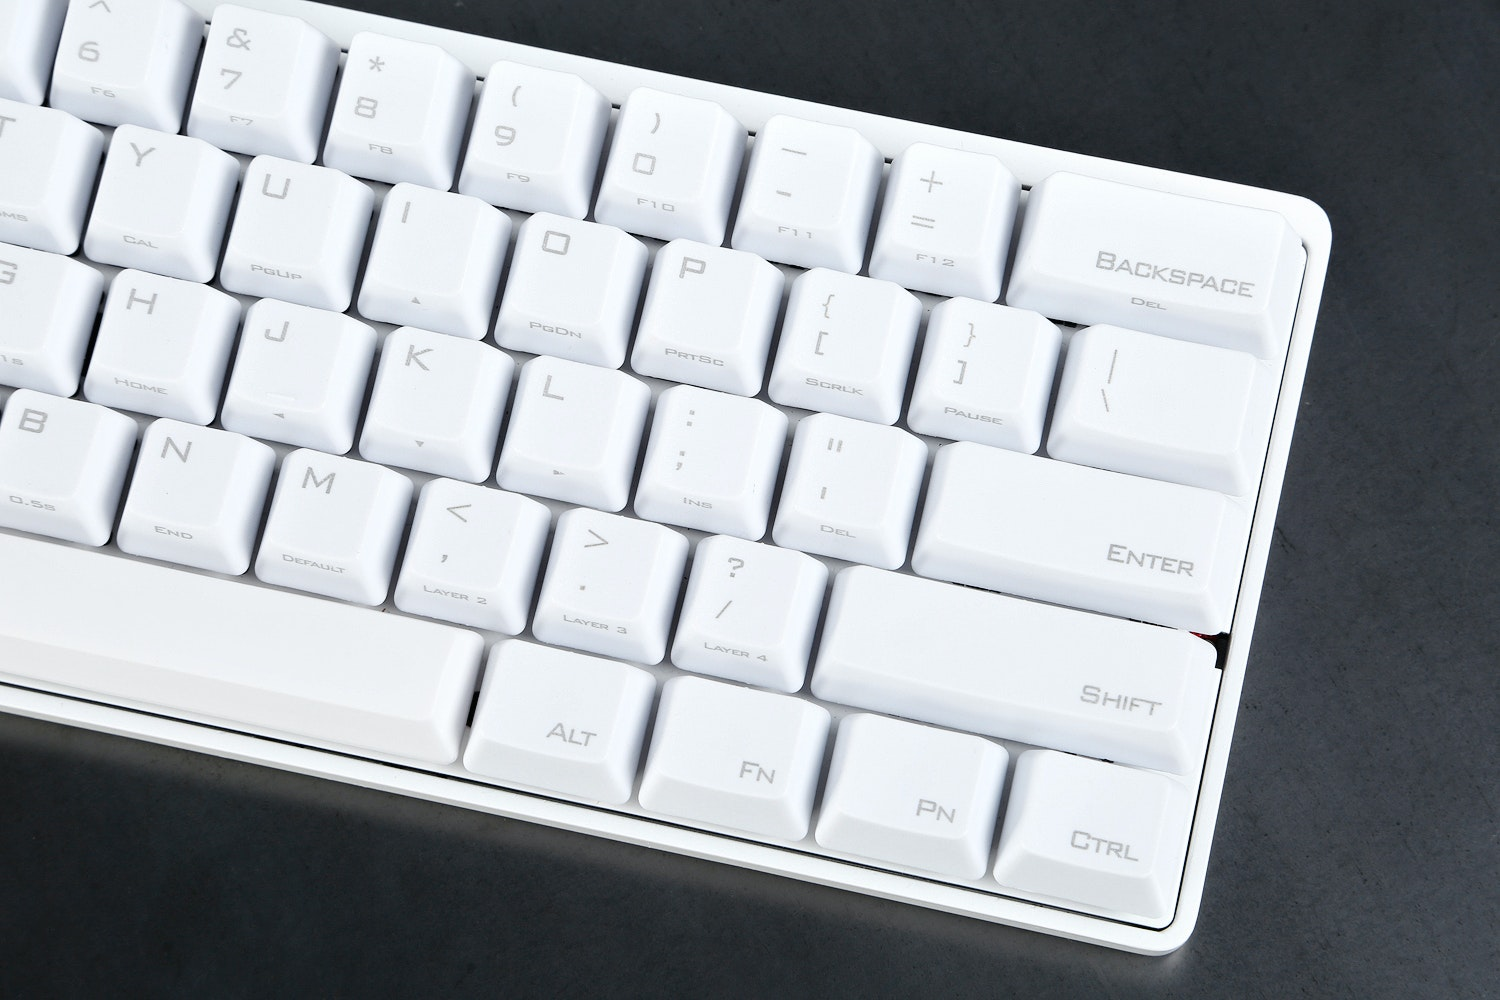 Vortex POK3R Mechanical Keyboard (Poker 3)